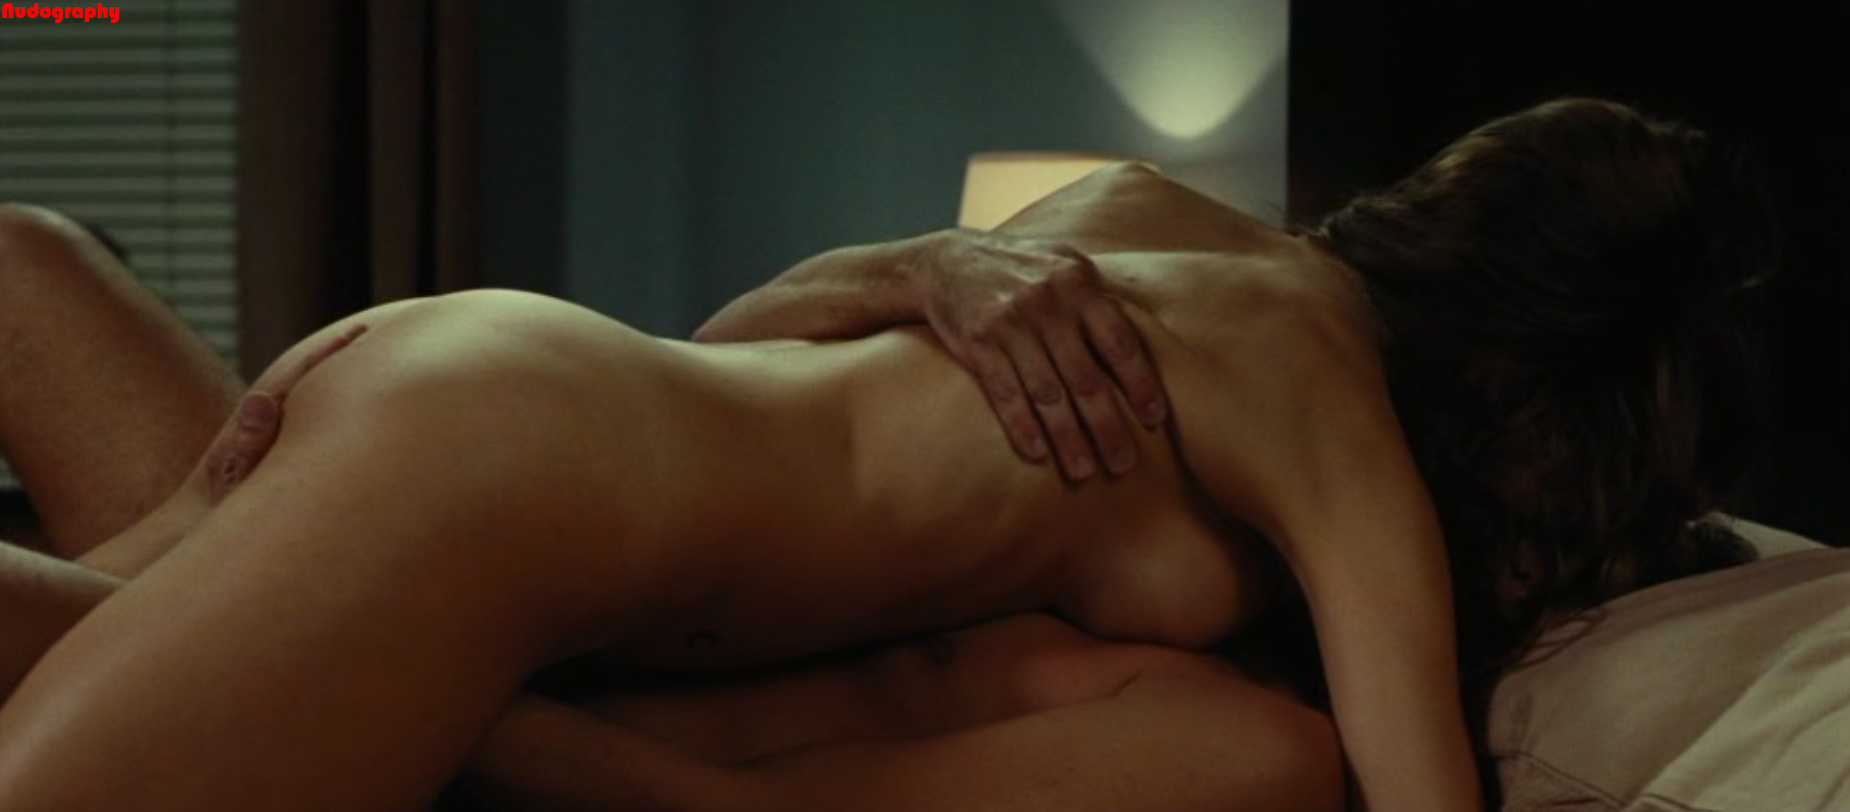 Elsa pataky di di hollywood 2010 sex scene